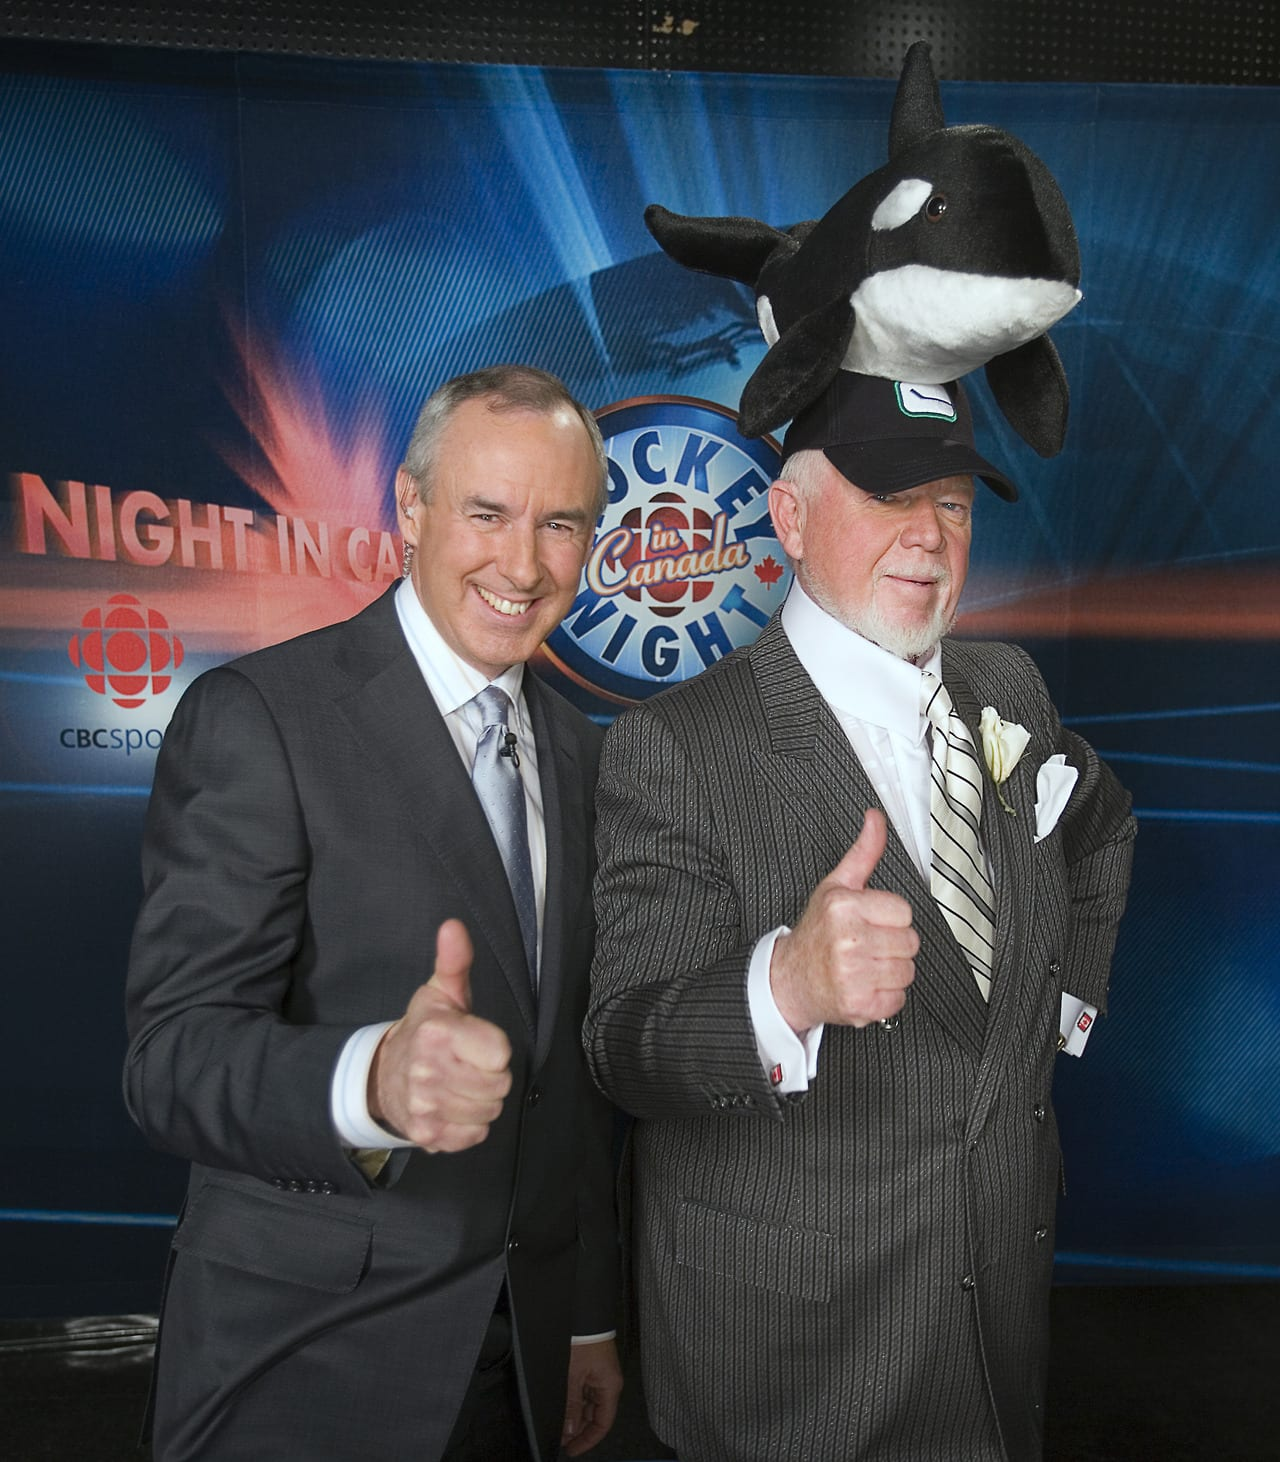 Don Cherry's status as an icon of Canadian TV hockey may prove to be his downfall